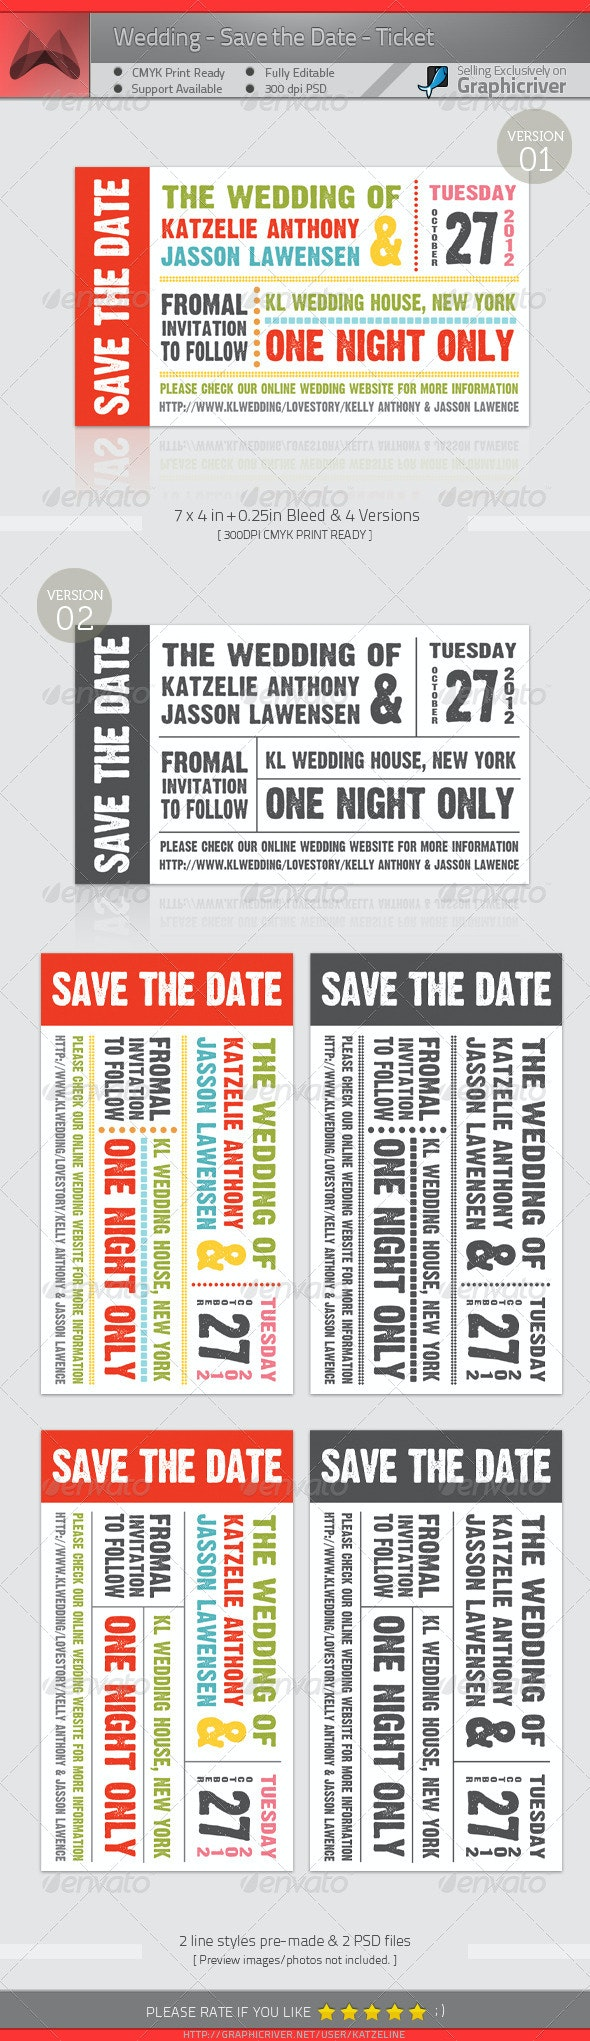 Wedding - Save The Date - Ticket - Weddings Cards & Invites